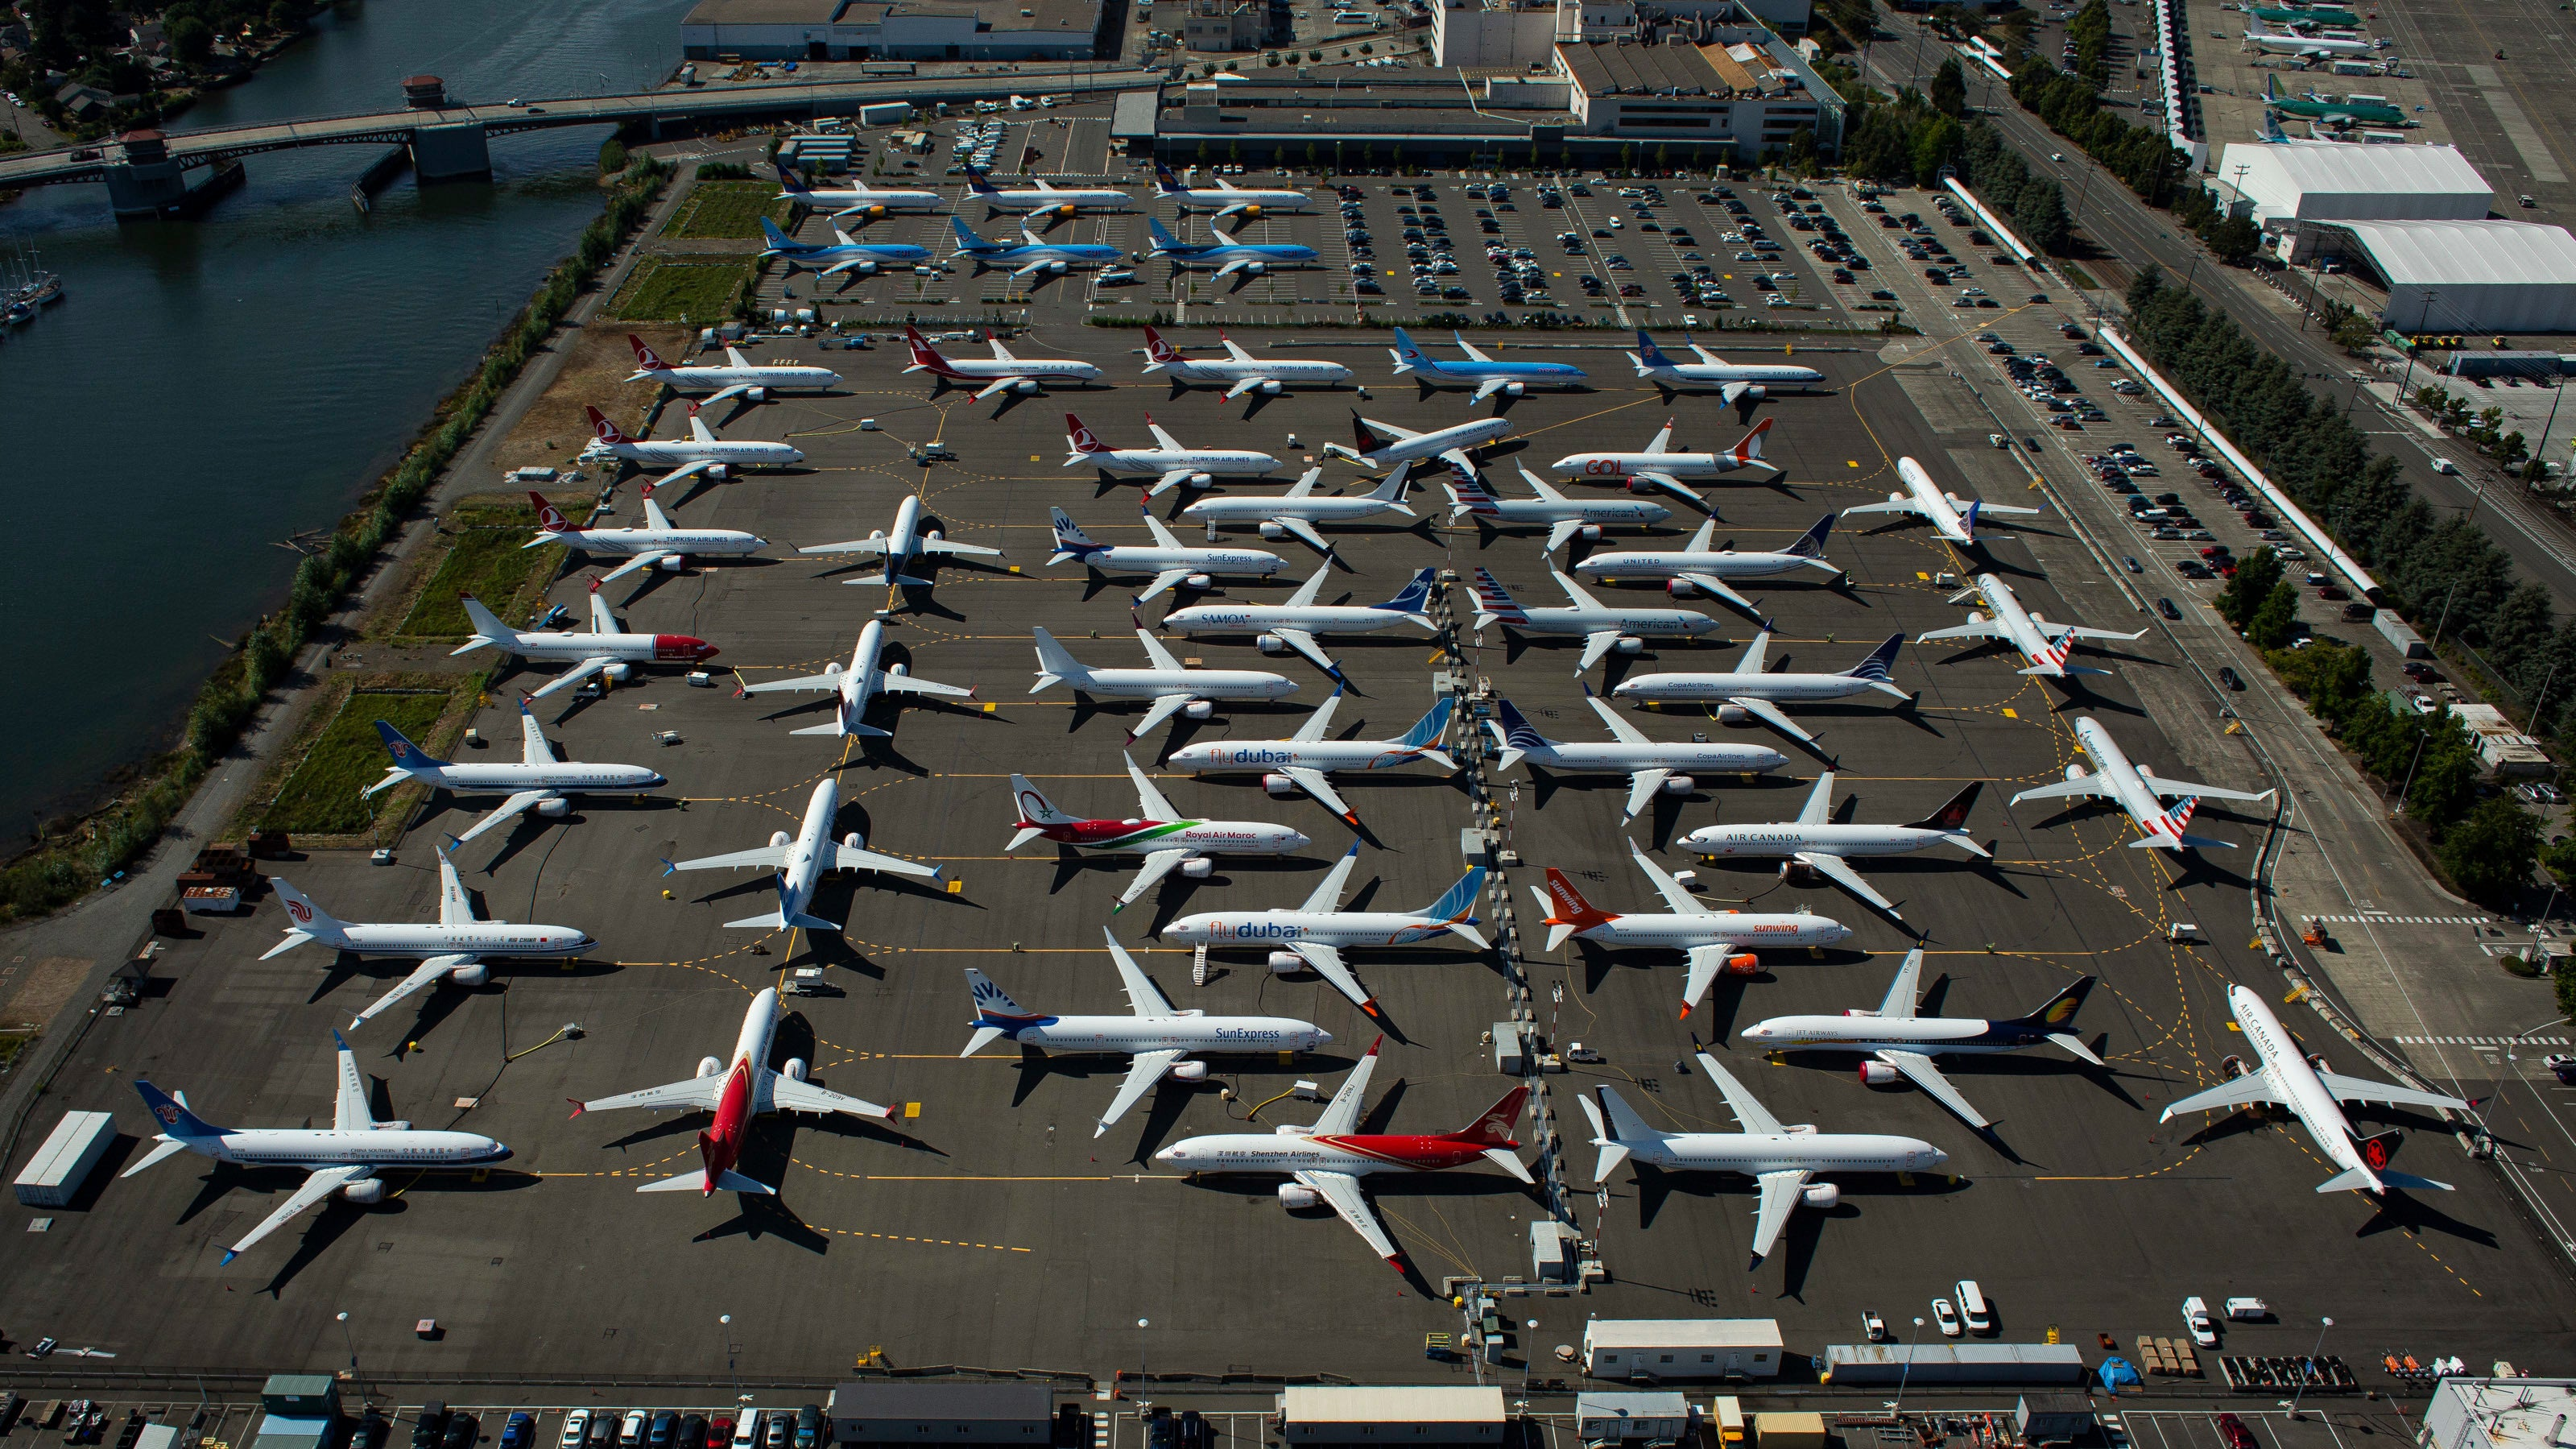 Report: Boeing Engineer Filed Ethics Complaint Over Scrapped 737 Max Safety System